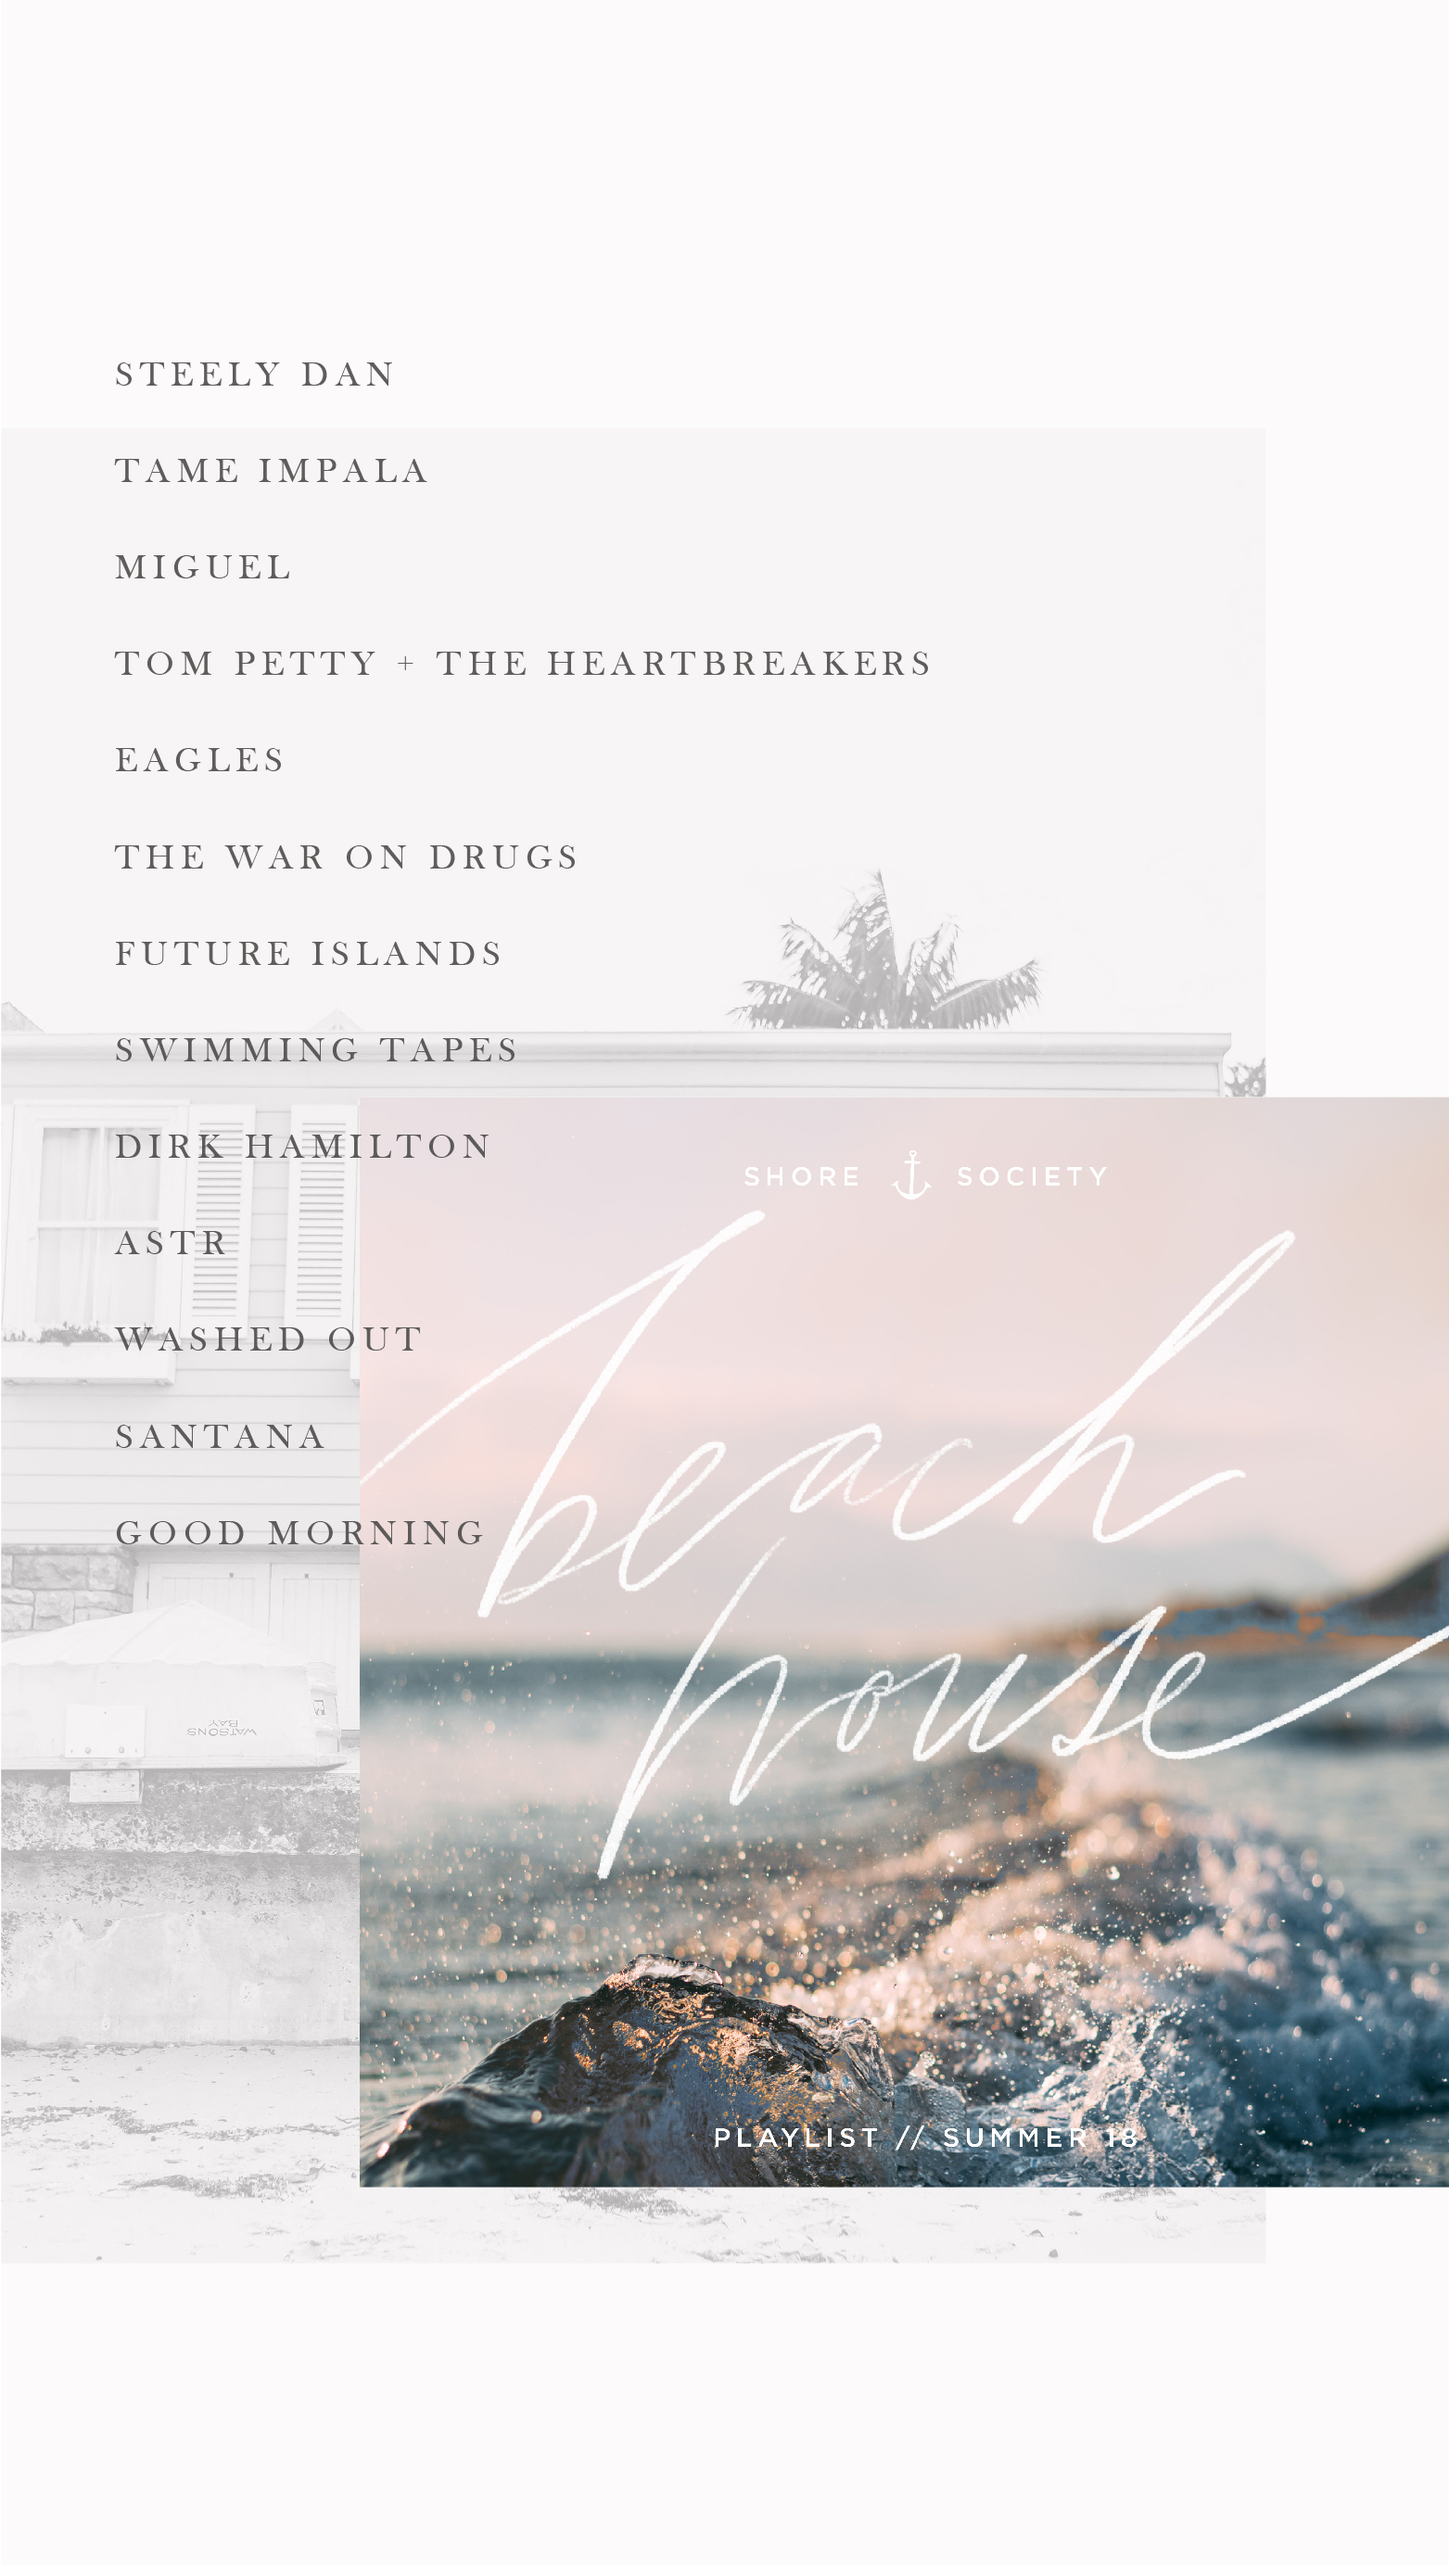 Beach House Playlist - Shore Society.jpg